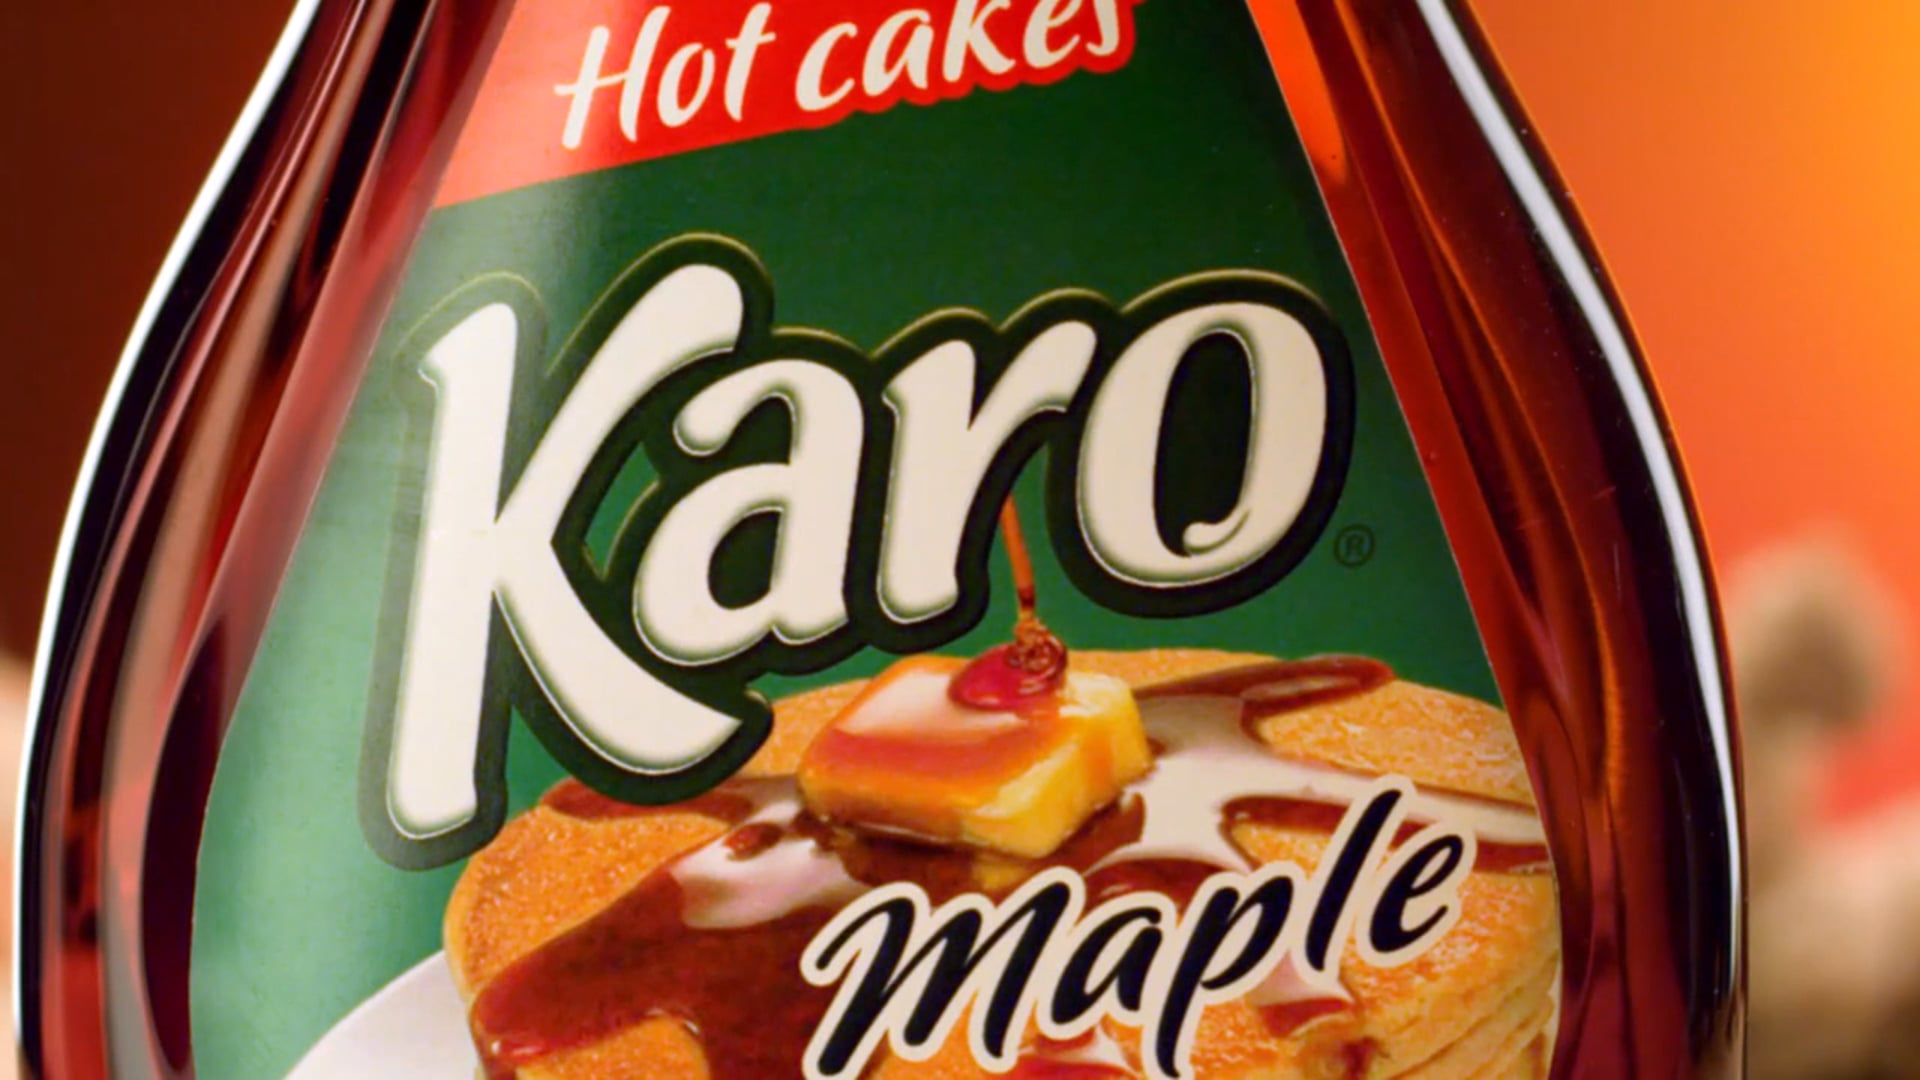 Hot Cakes Syrup Karo commercial